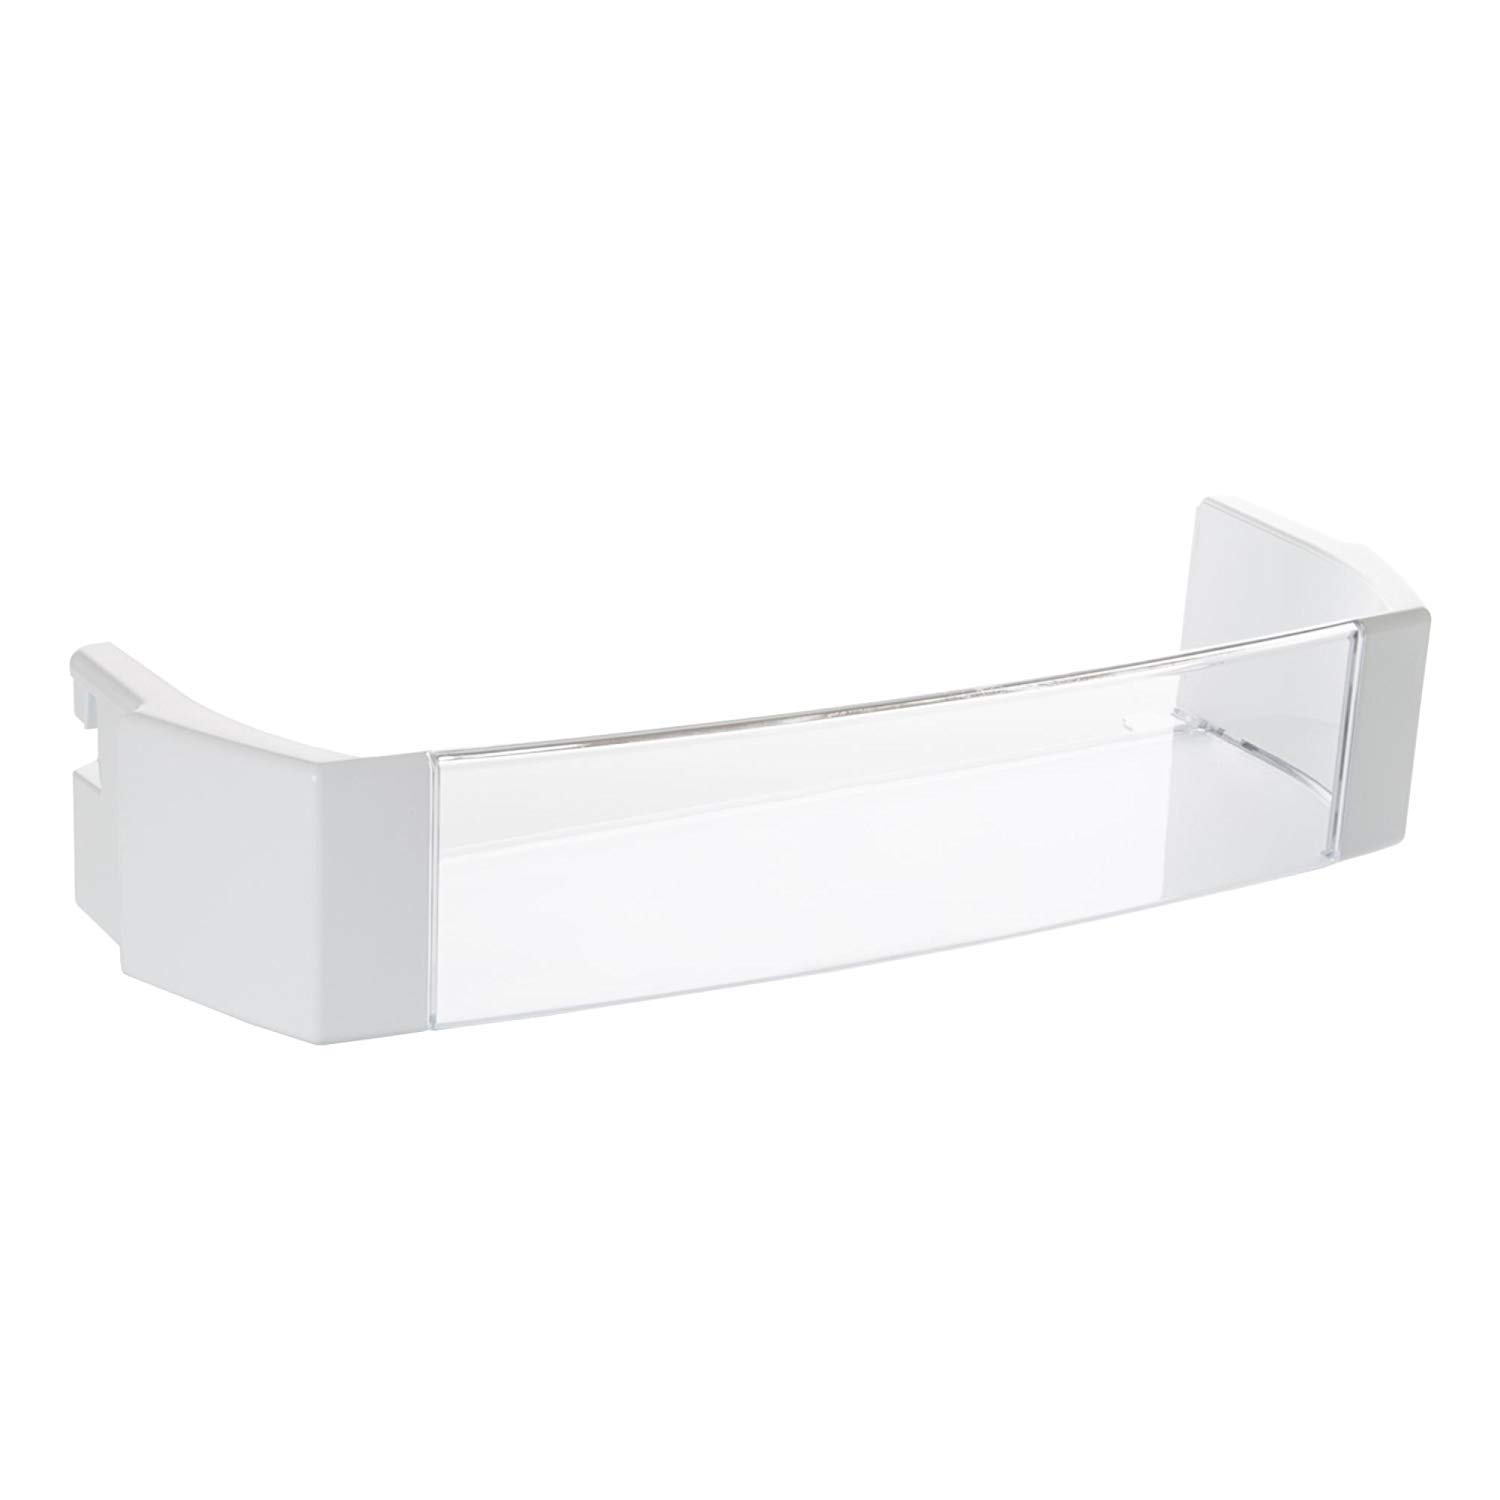 Lifetime Appliance WR71X10409 Door Shelf Bin Rack for GE Refrigerator